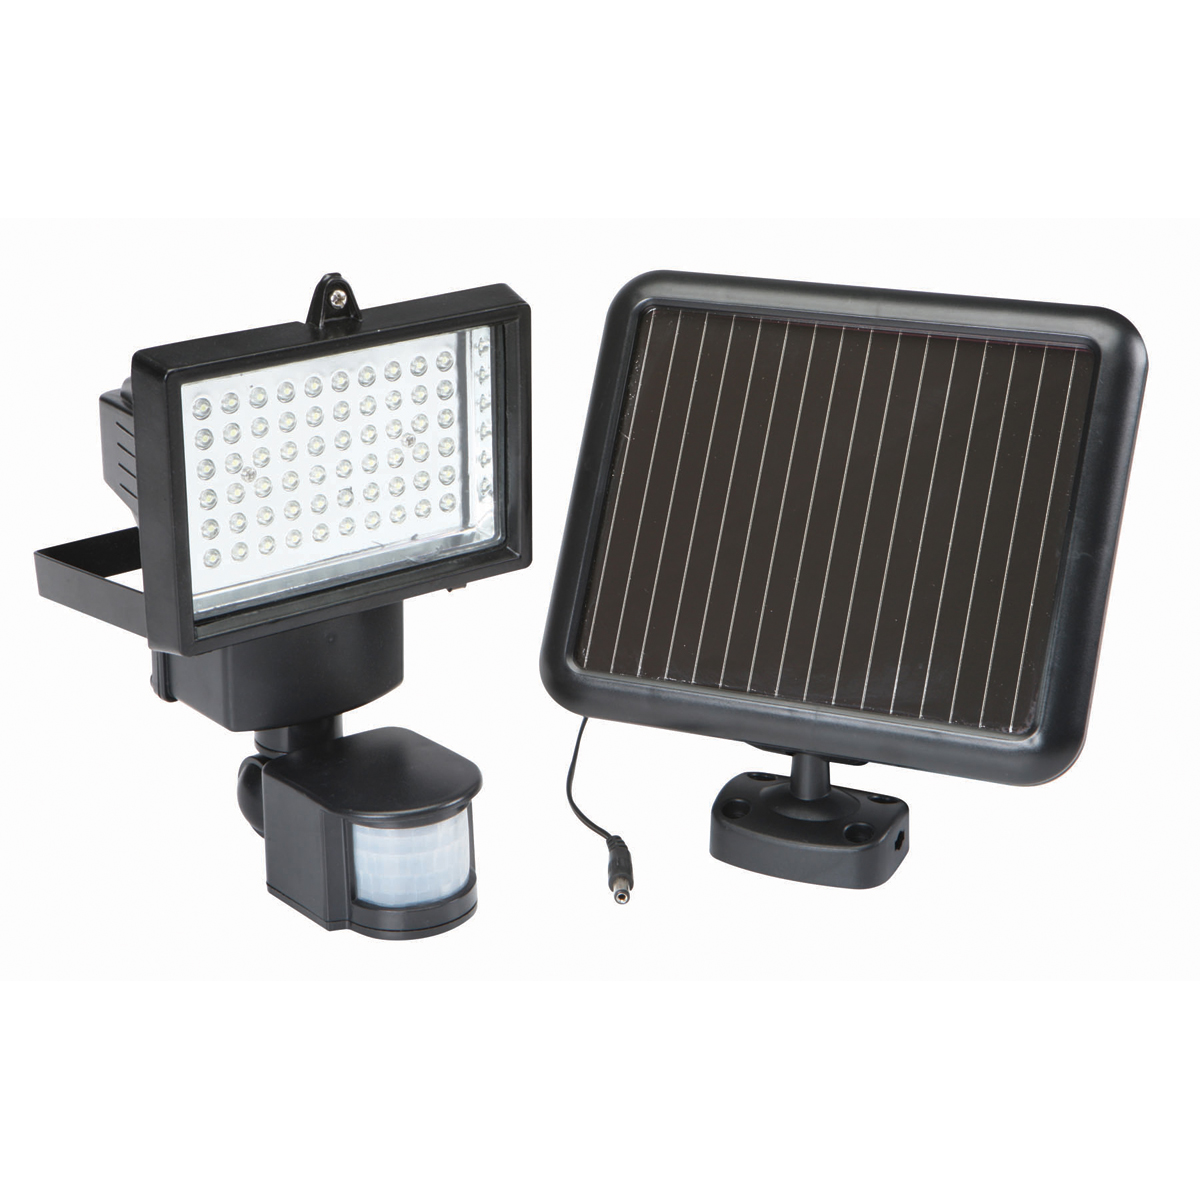 Led solar security light 60 led solar security light aloadofball Image collections